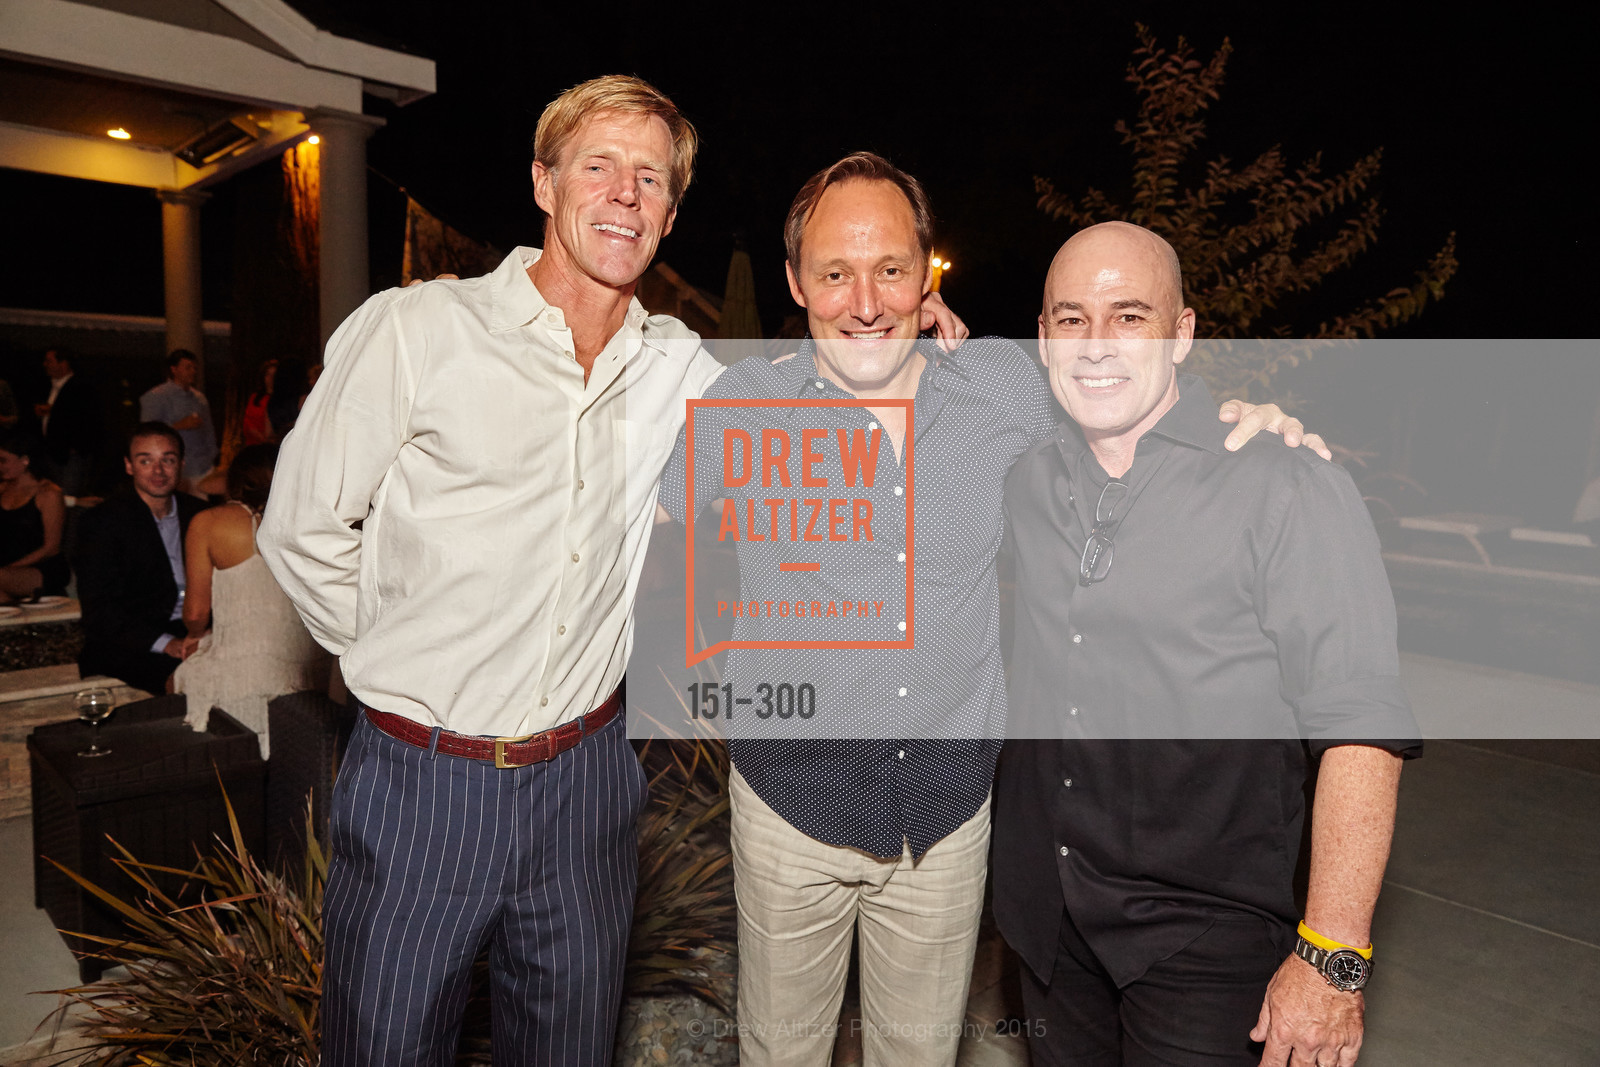 Larry Lanhert, Doug Merritt, John Kelly, Breast Cancer Awareness Fund Presents This Old Bag Silicon Valley Preview Party, Private Residence, September 19th, 2015,Drew Altizer, Drew Altizer Photography, full-service agency, private events, San Francisco photographer, photographer california